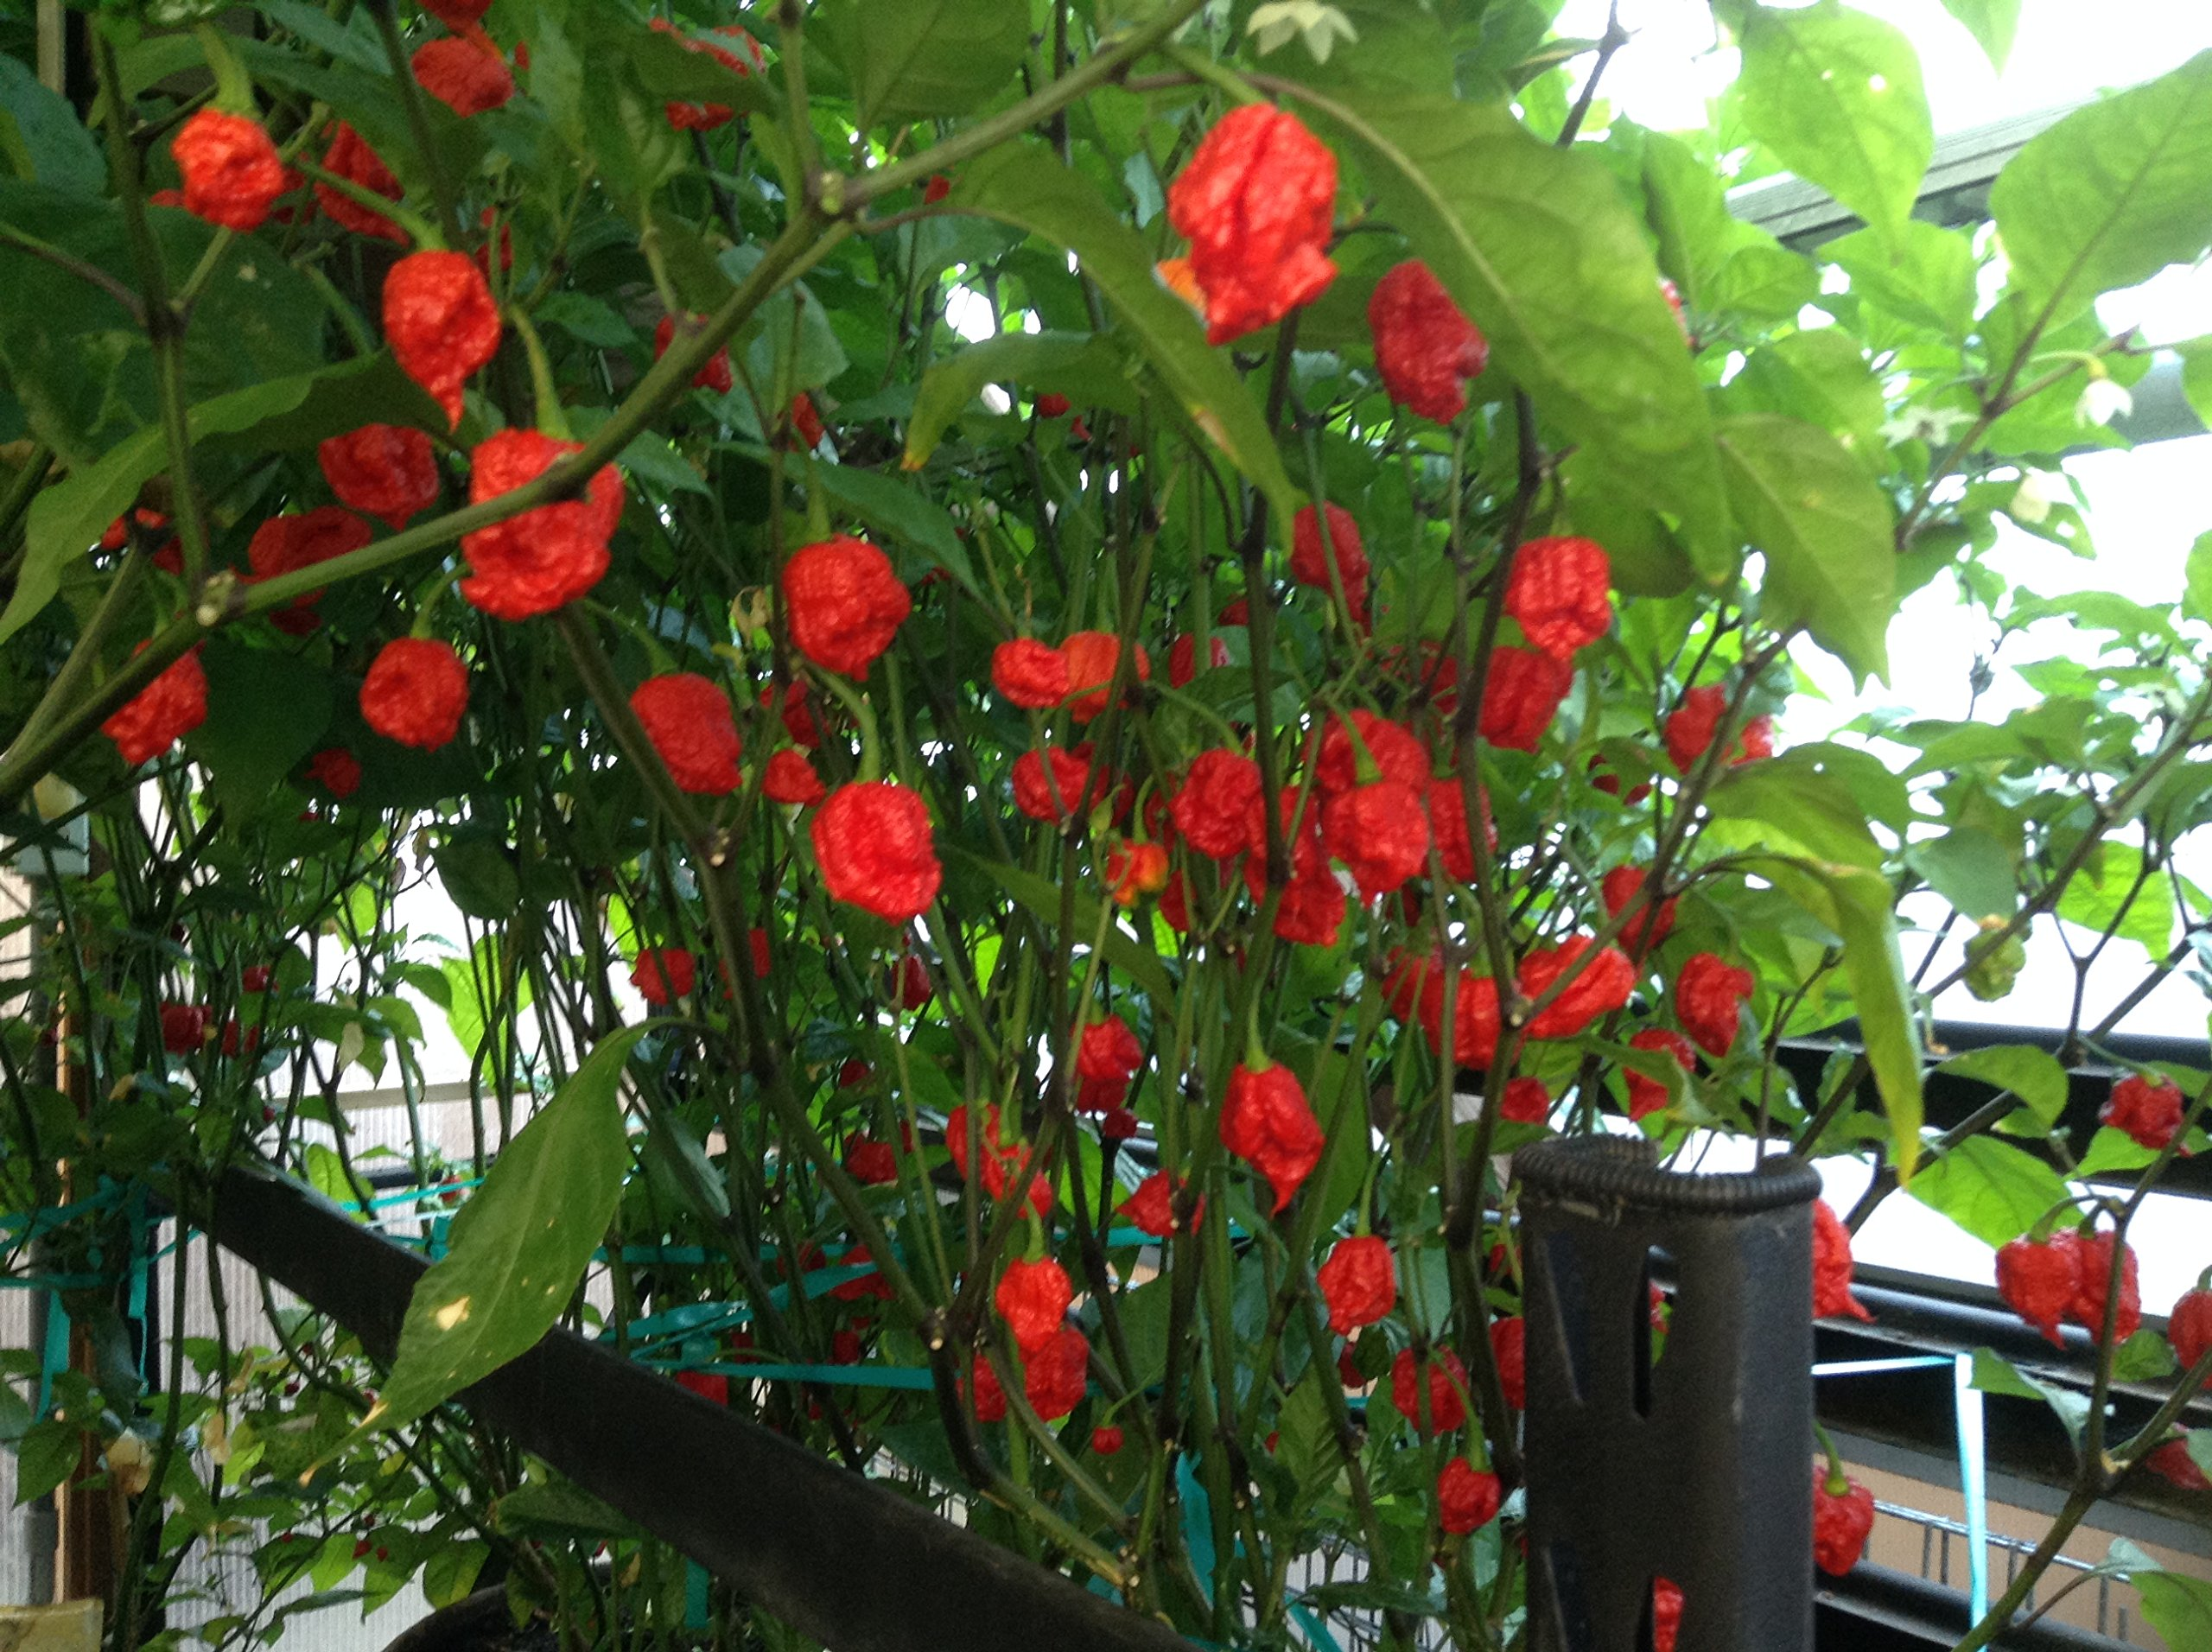 Hottest Pepper Plants (3 Plants) red Carolina Reapers by Non-Branded